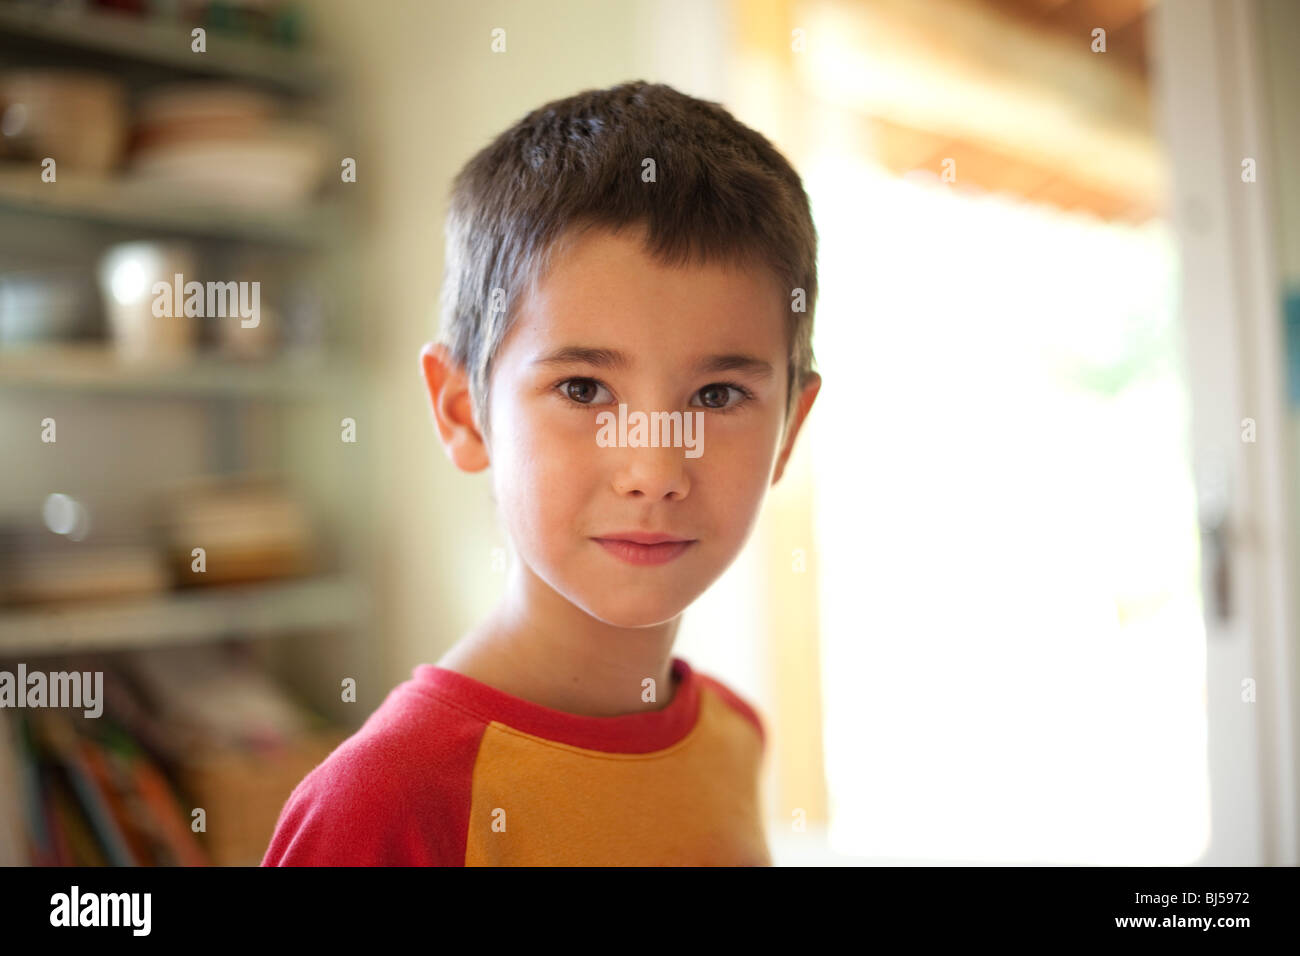 portrait of 6 year old boy - Stock Image